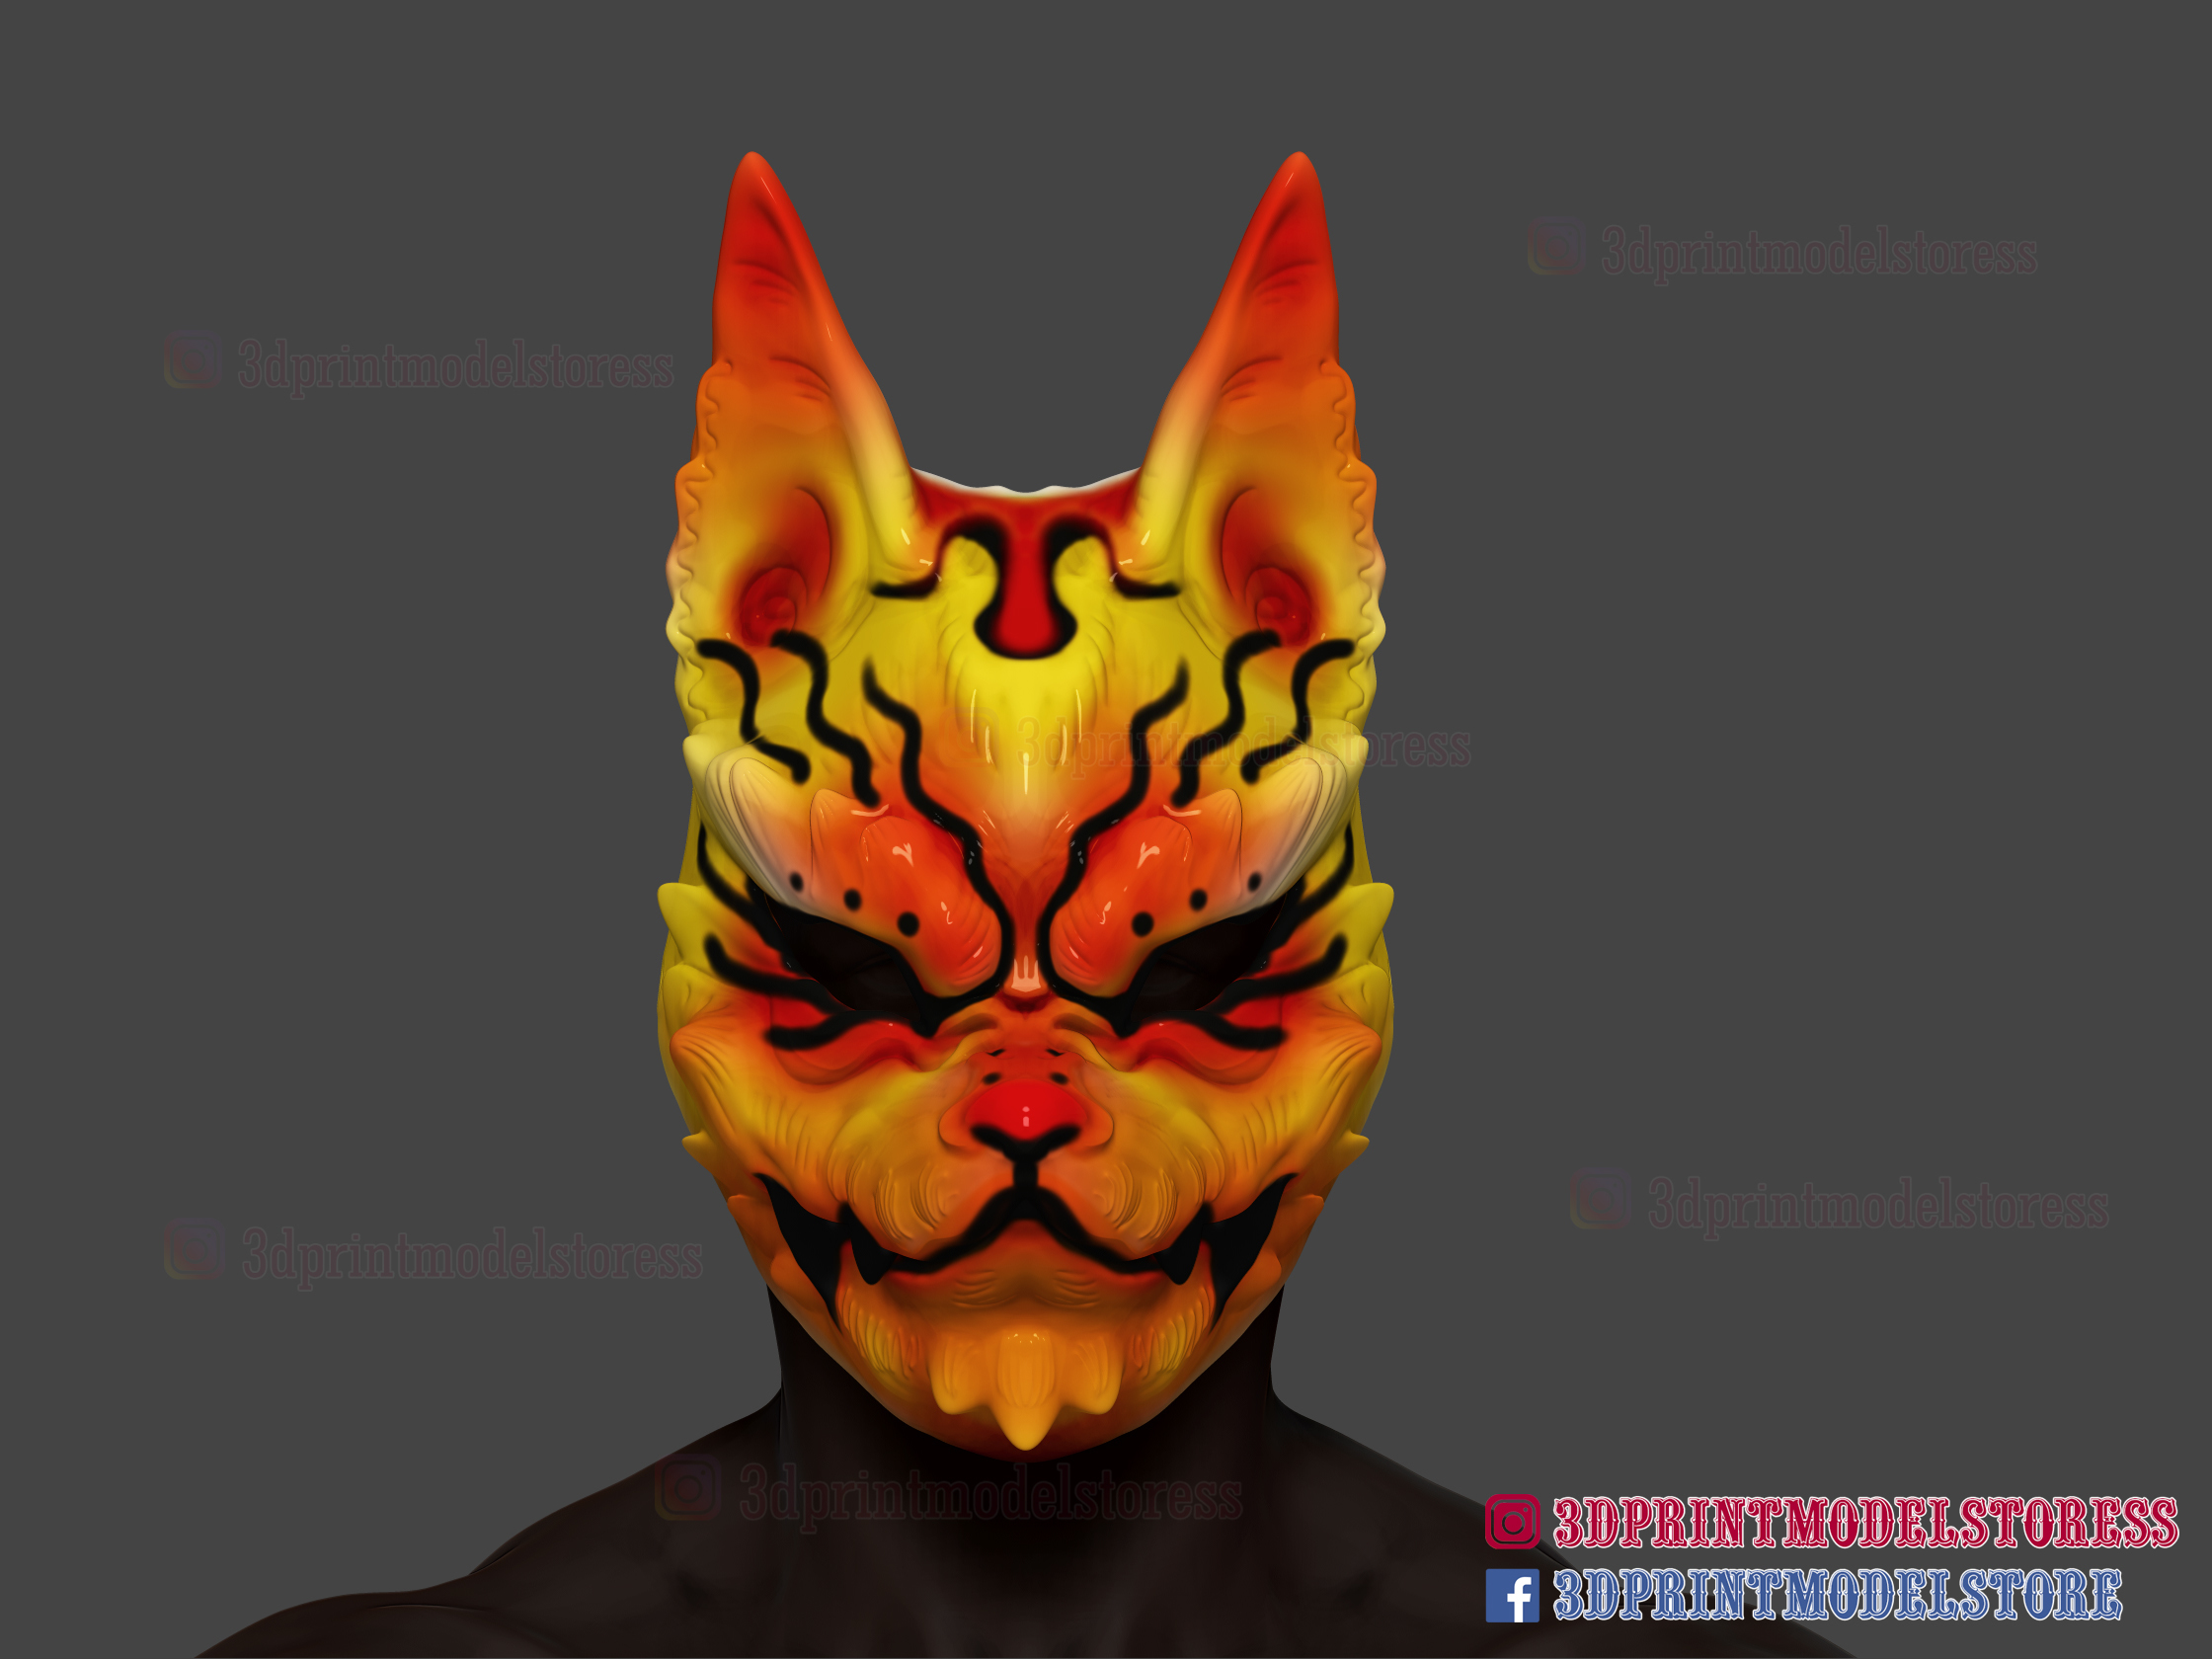 It's just an image of Fox Mask Printable in cut out